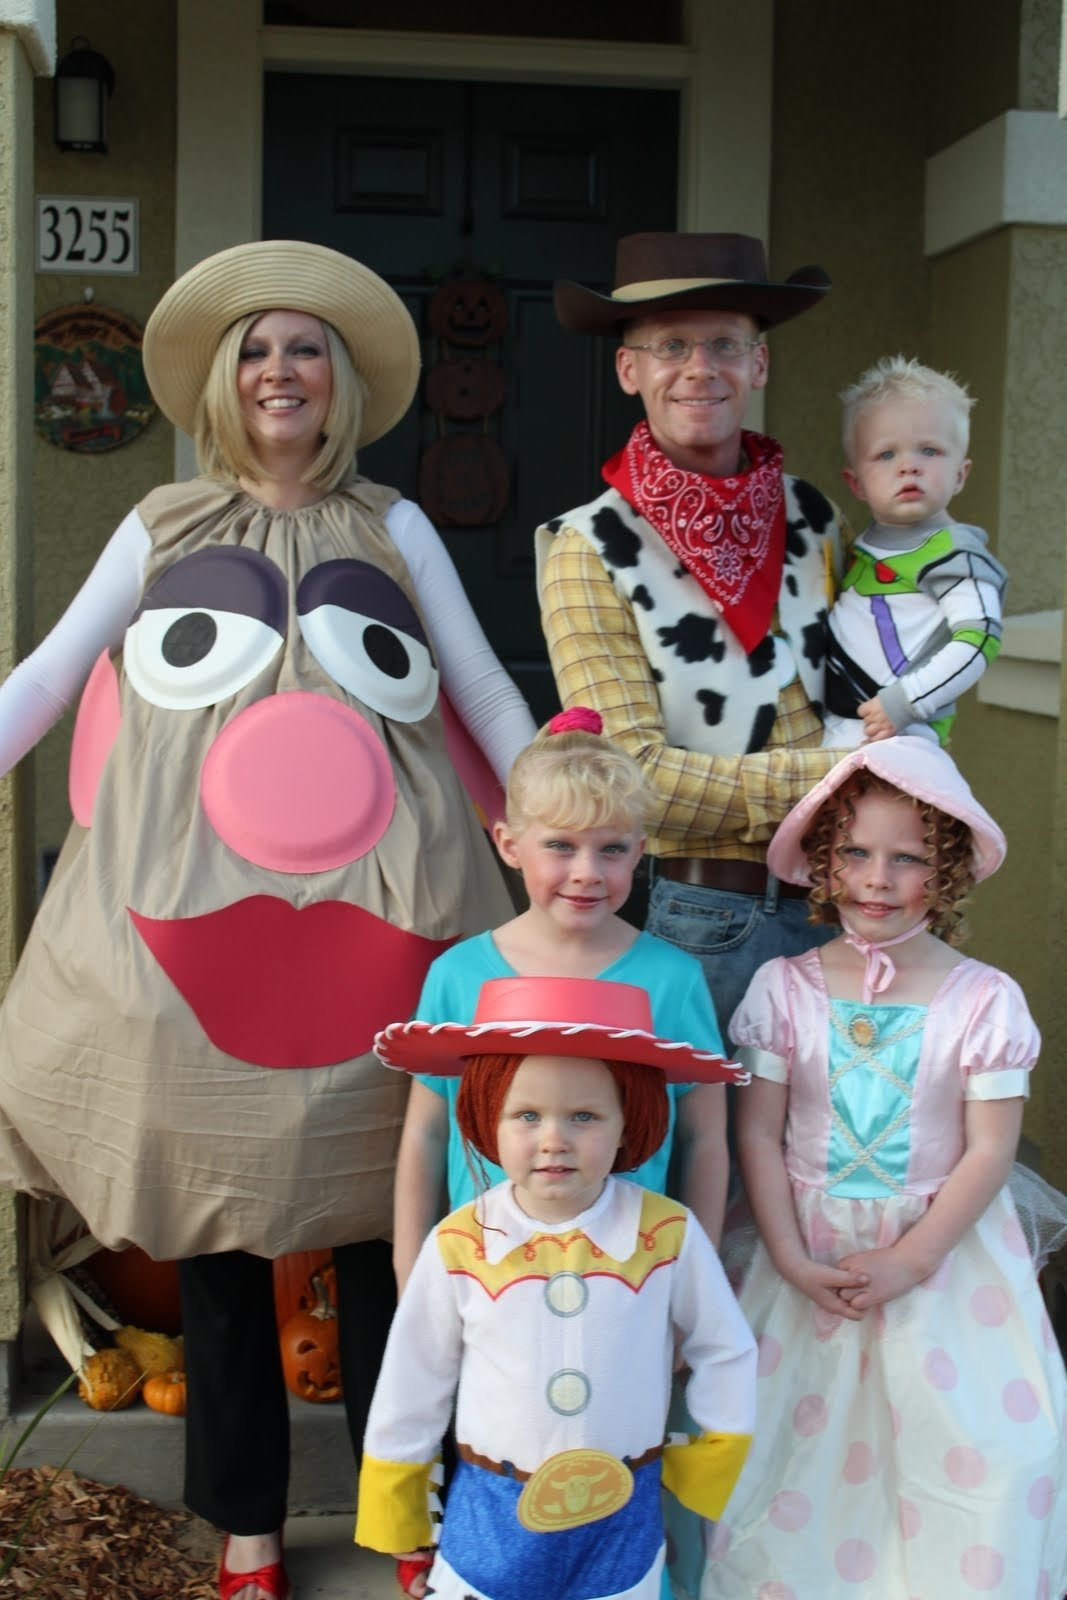 10 Gorgeous Family Of Three Halloween Costume Ideas welcome to the krazy kingdom halloween costume pics 1 2020